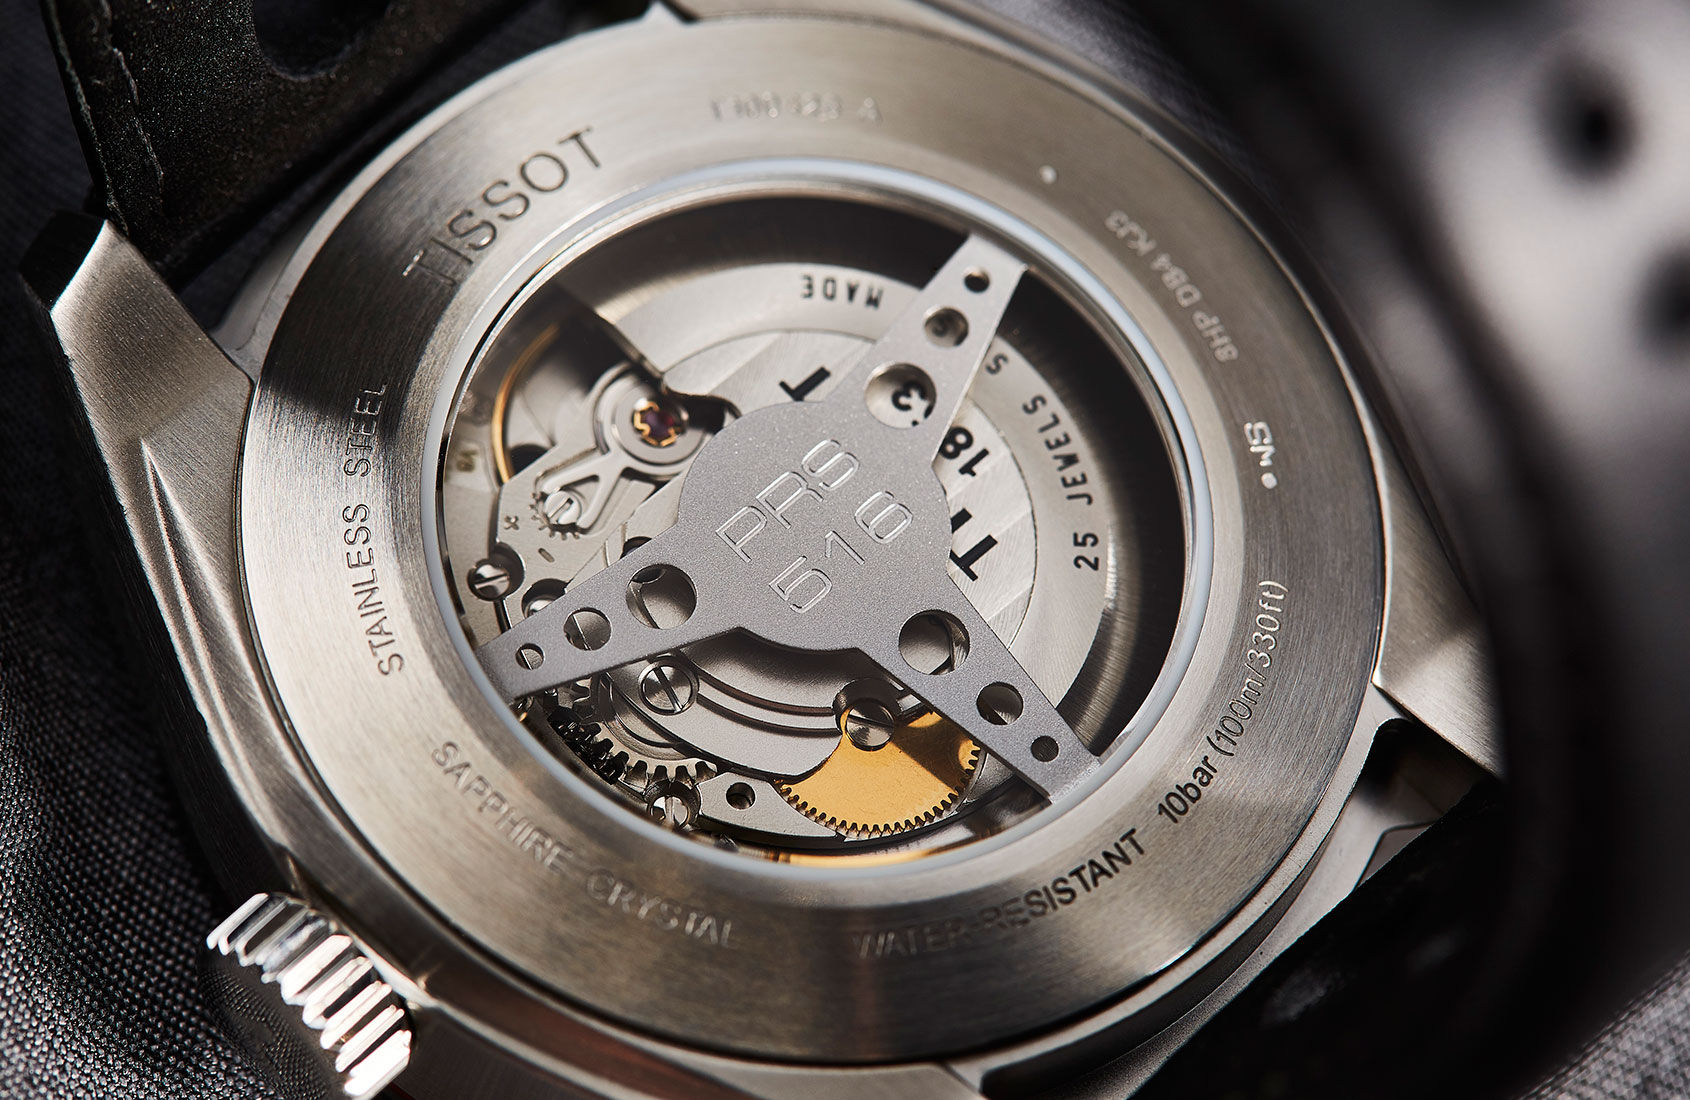 hands-on-the-smartly-designed-value-packed-tissot-prs-516-4